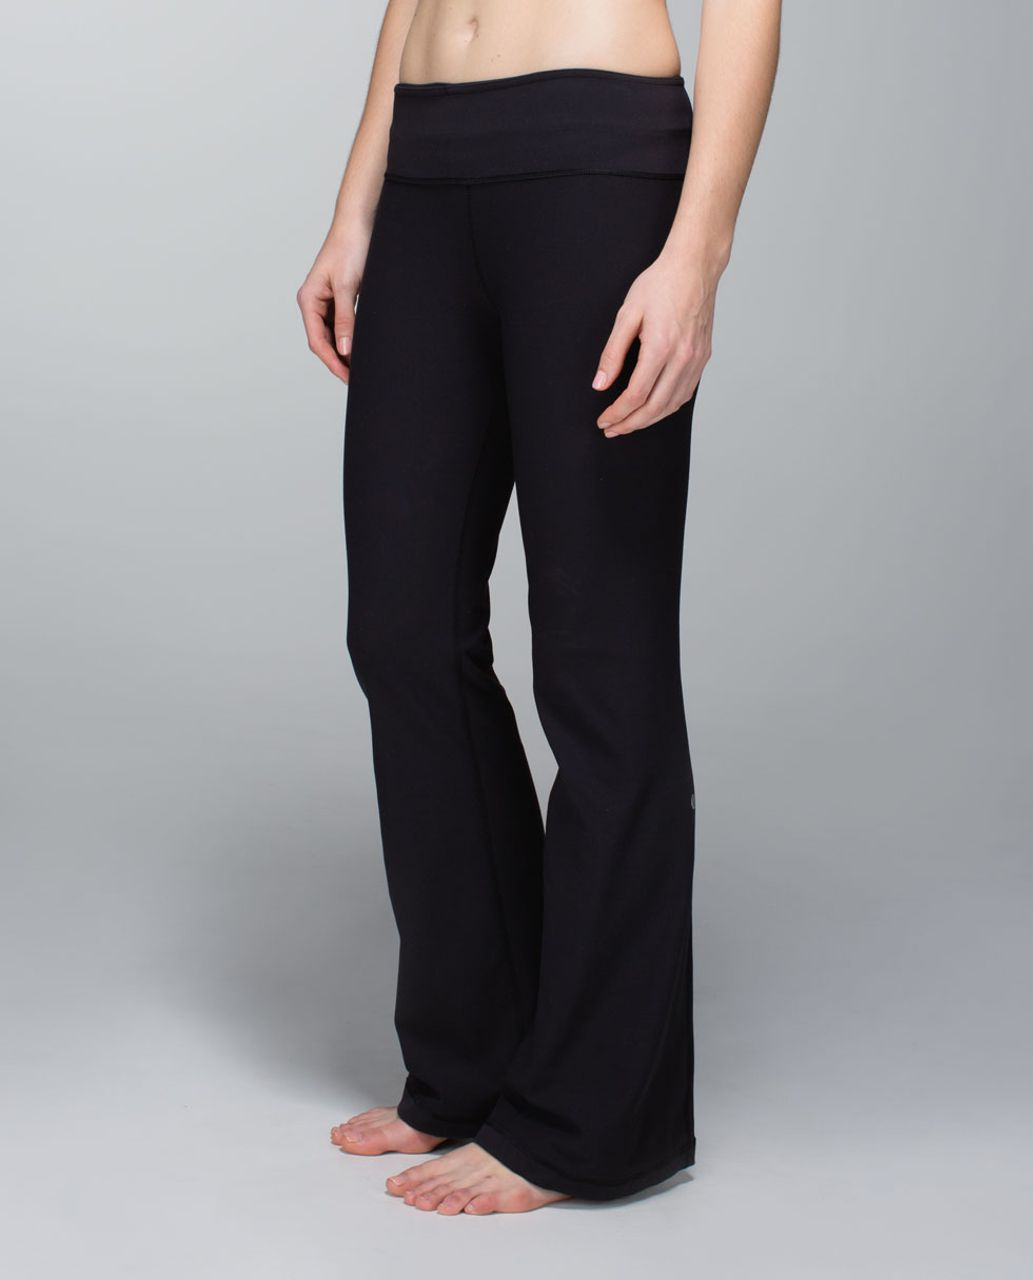 Lululemon Groove Pant *Brushed (Tall) - Black